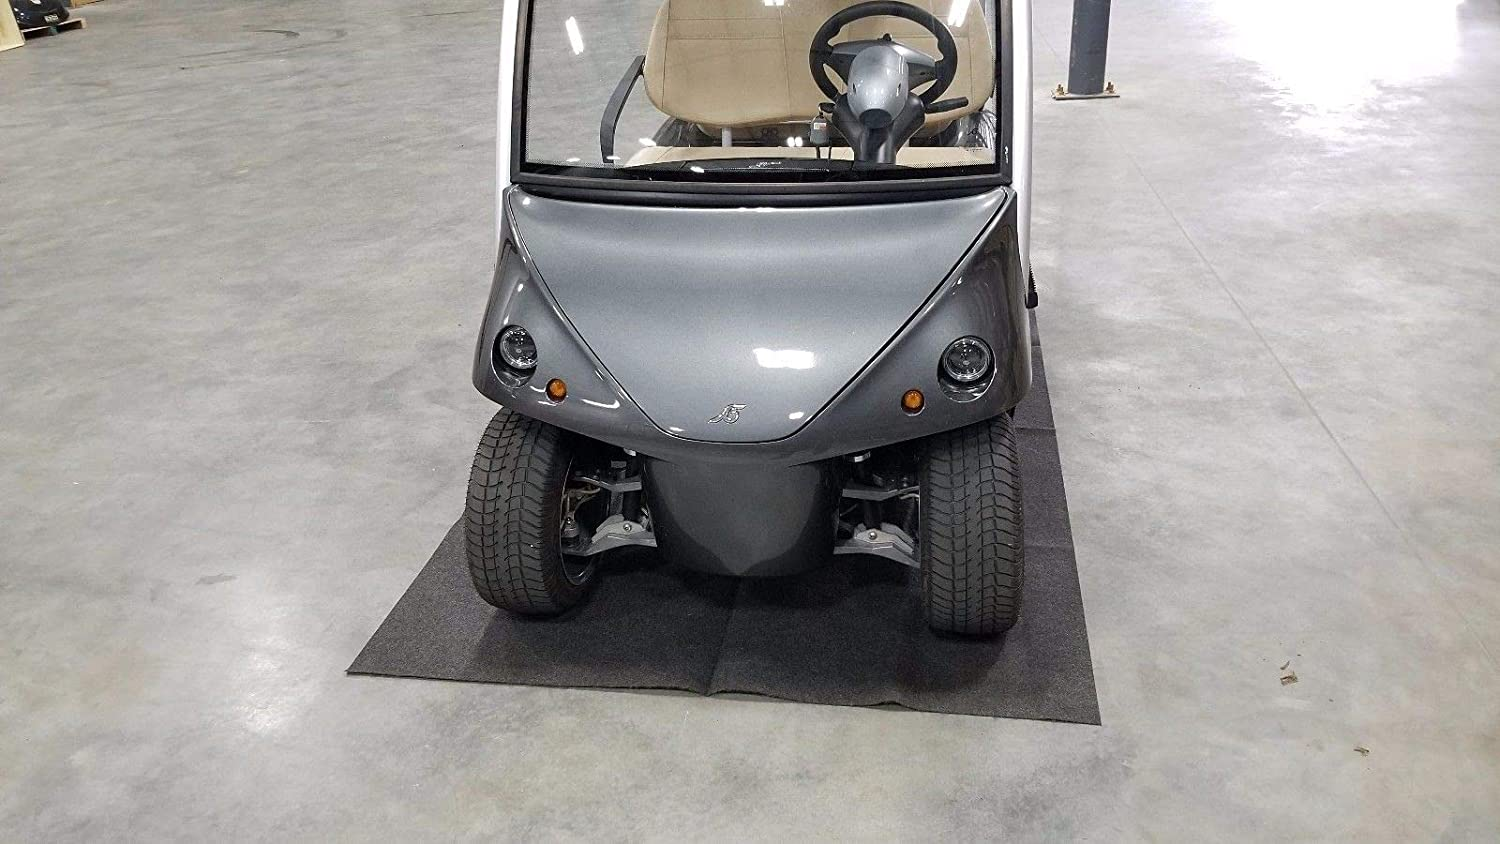 Ezgo Golf Cart Videos Luxury Carts Parked on